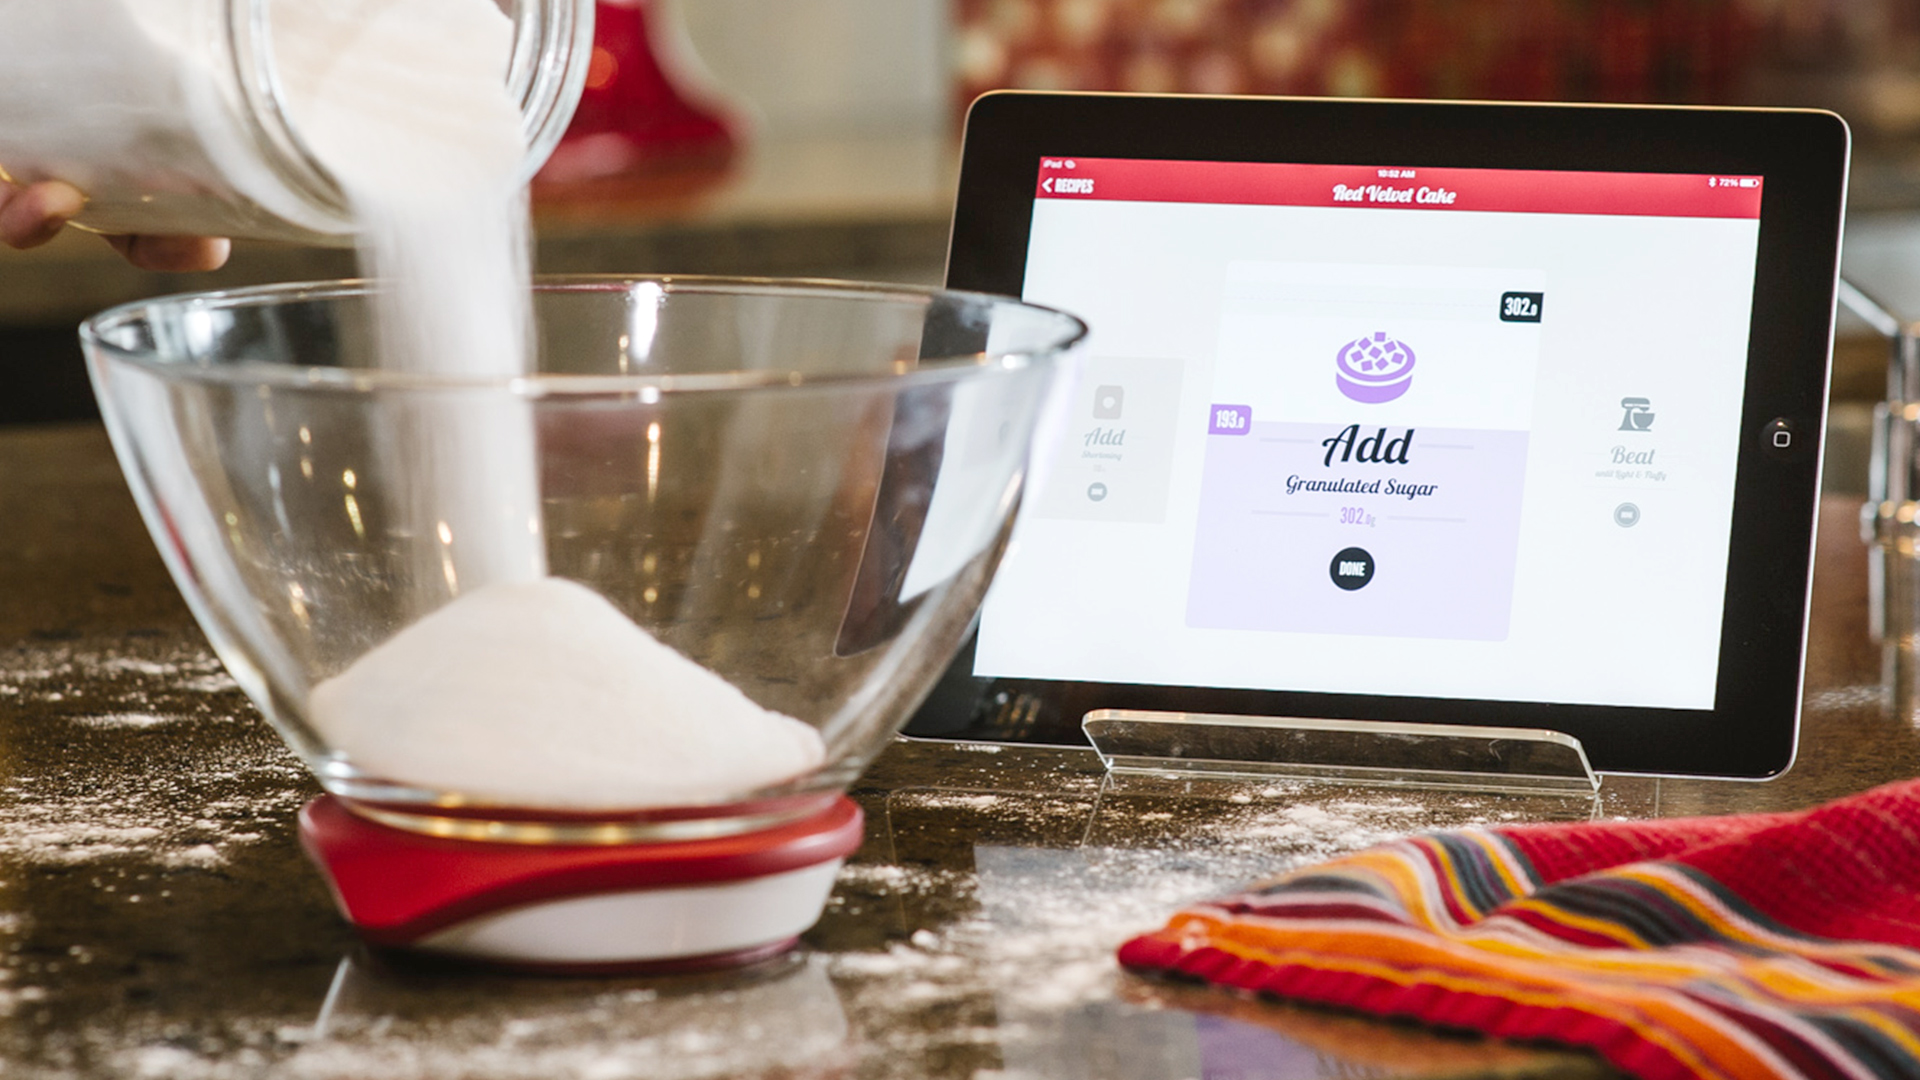 Drop kitchen scale filled with flour and accompanying iPad app